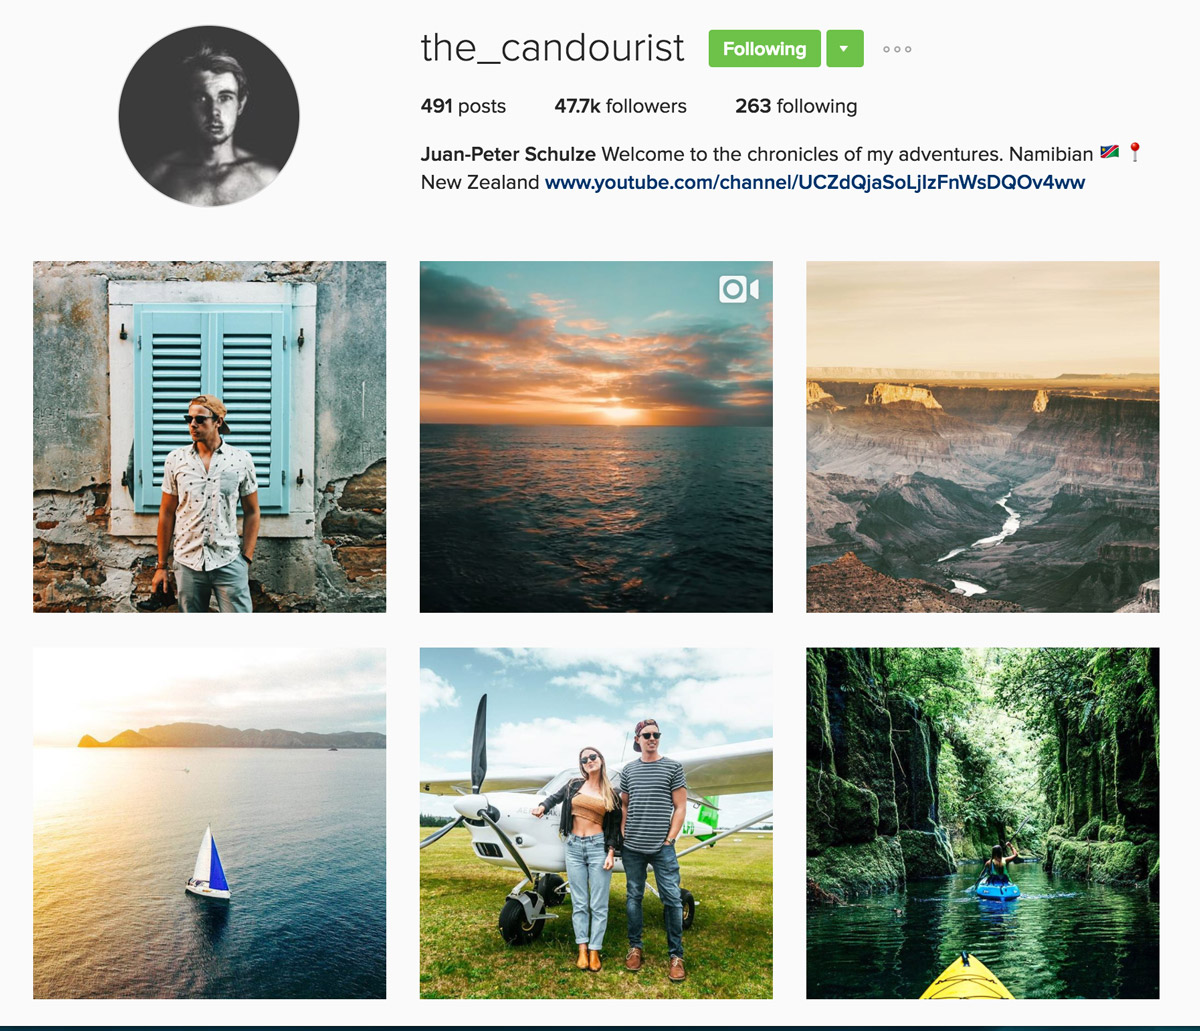 Travel-Instagram-The-Candourist